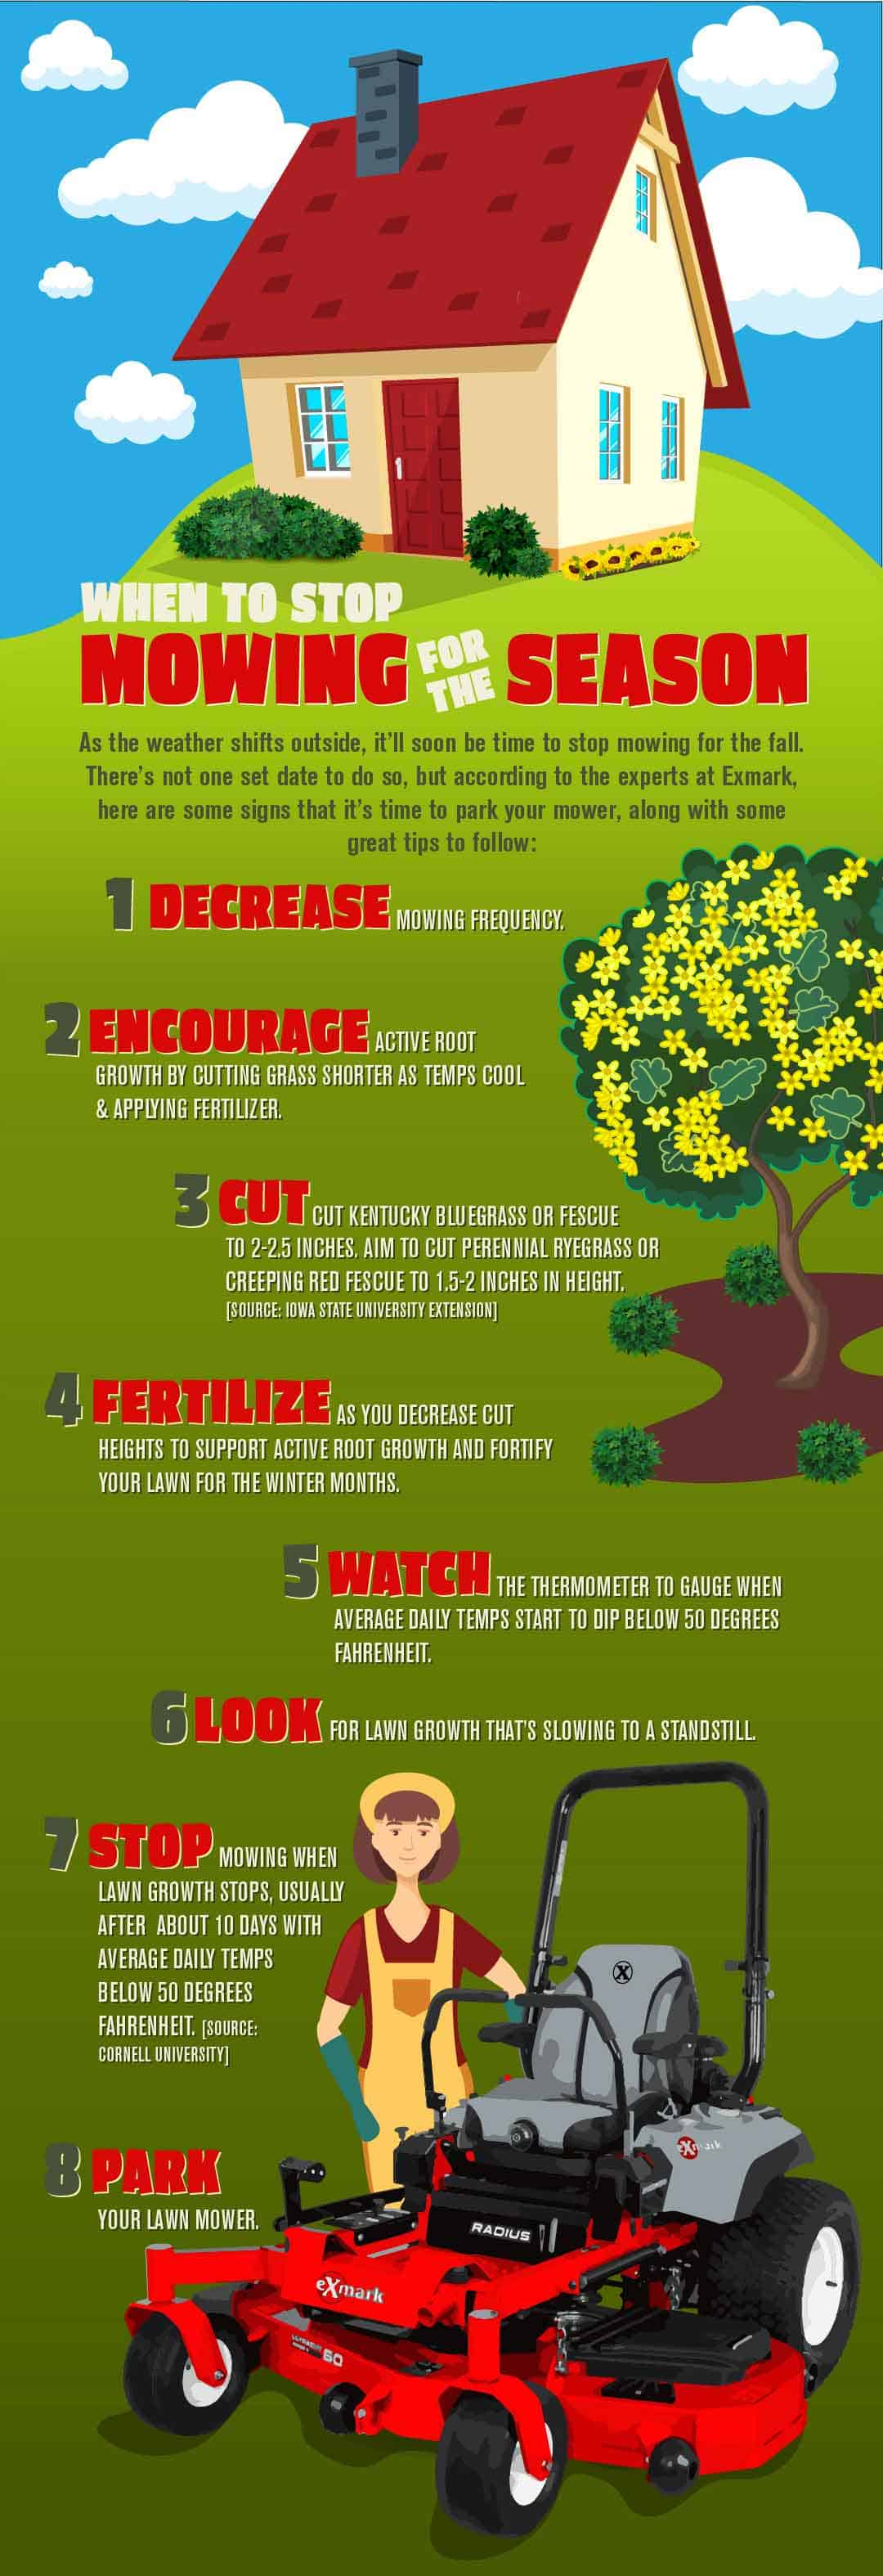 When to stop mowing for the season infographic with tips for fall lawn care